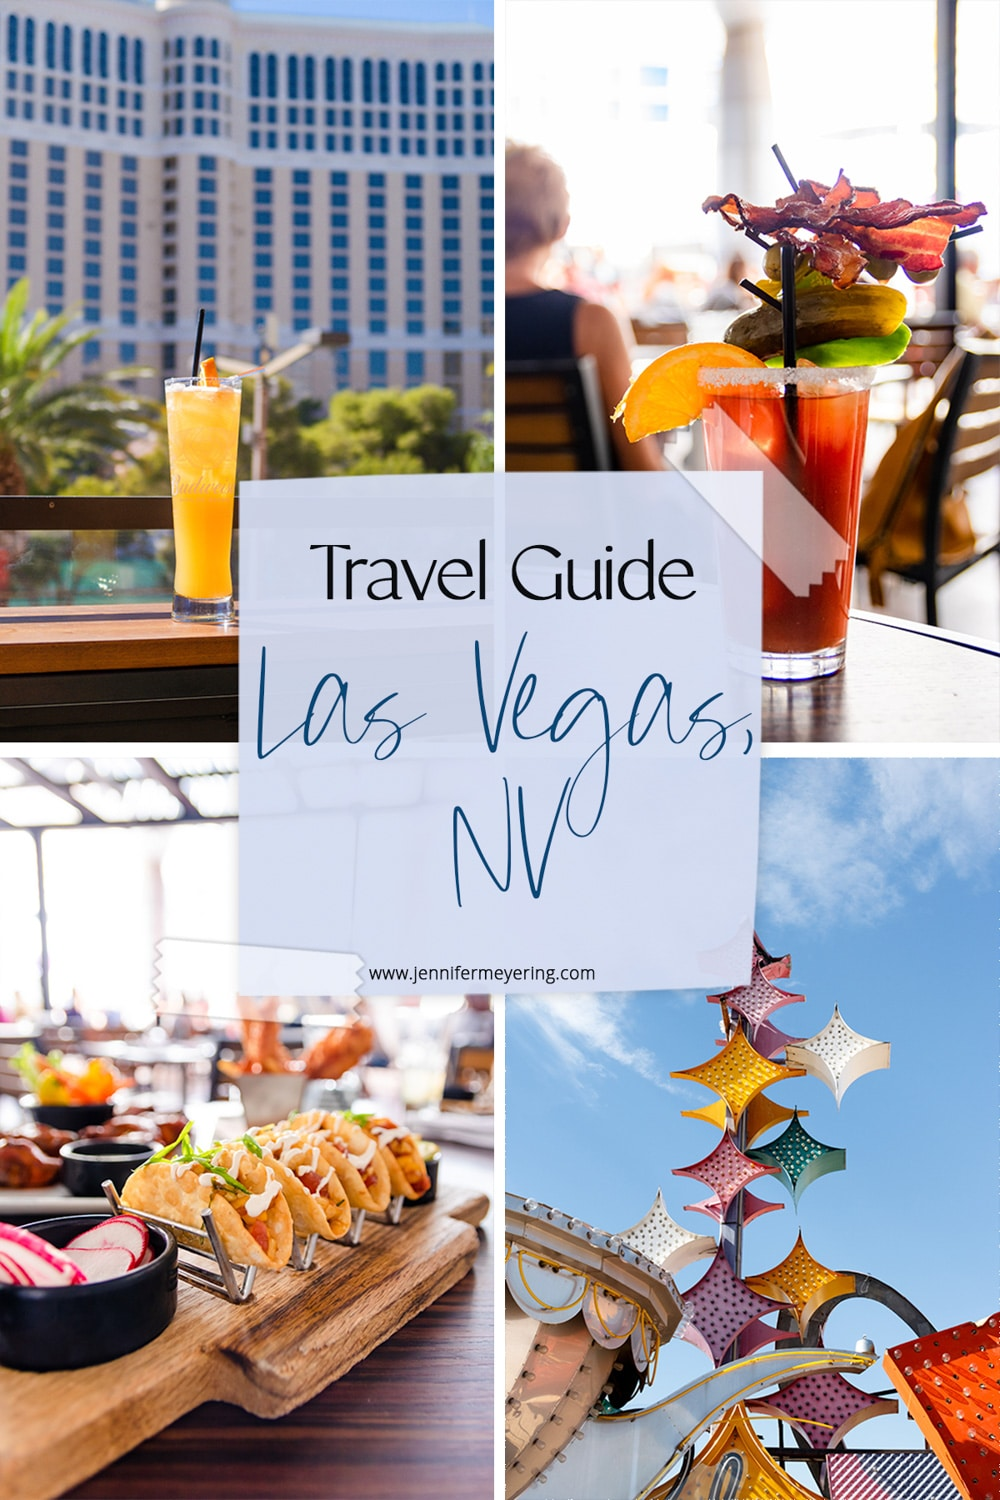 Travel Guide: Las Vegas, NV